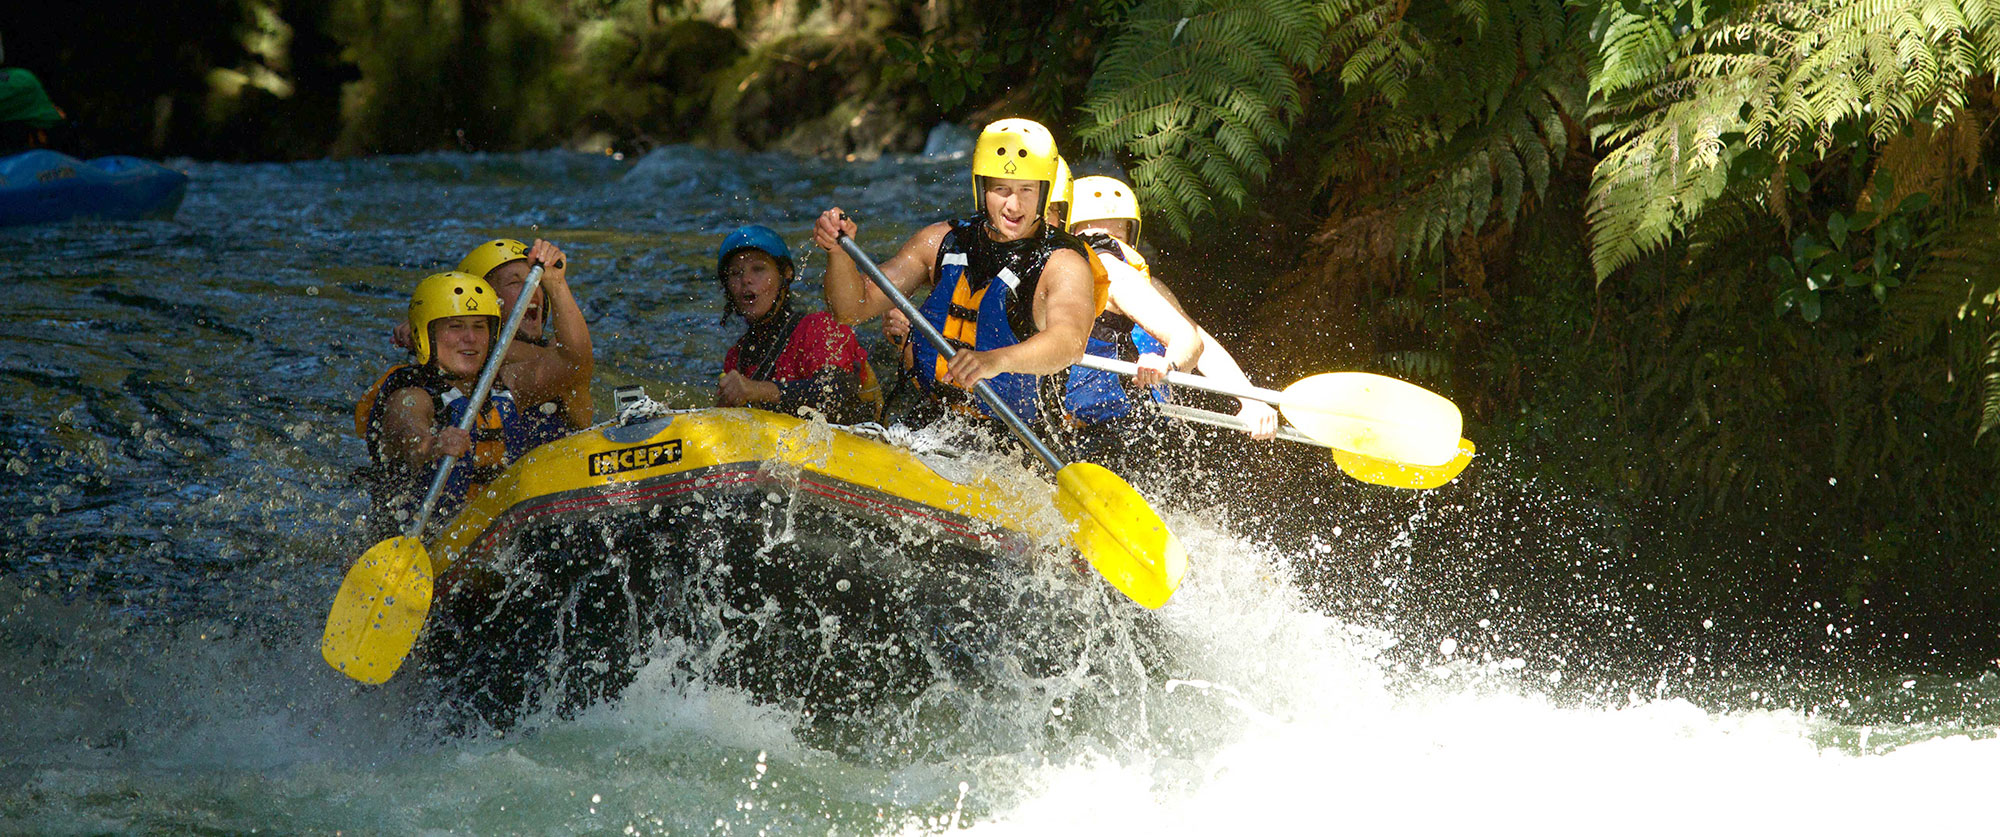 New Zealand Honeymoon Package: Outdoor Adventure - Rotorua Rafting